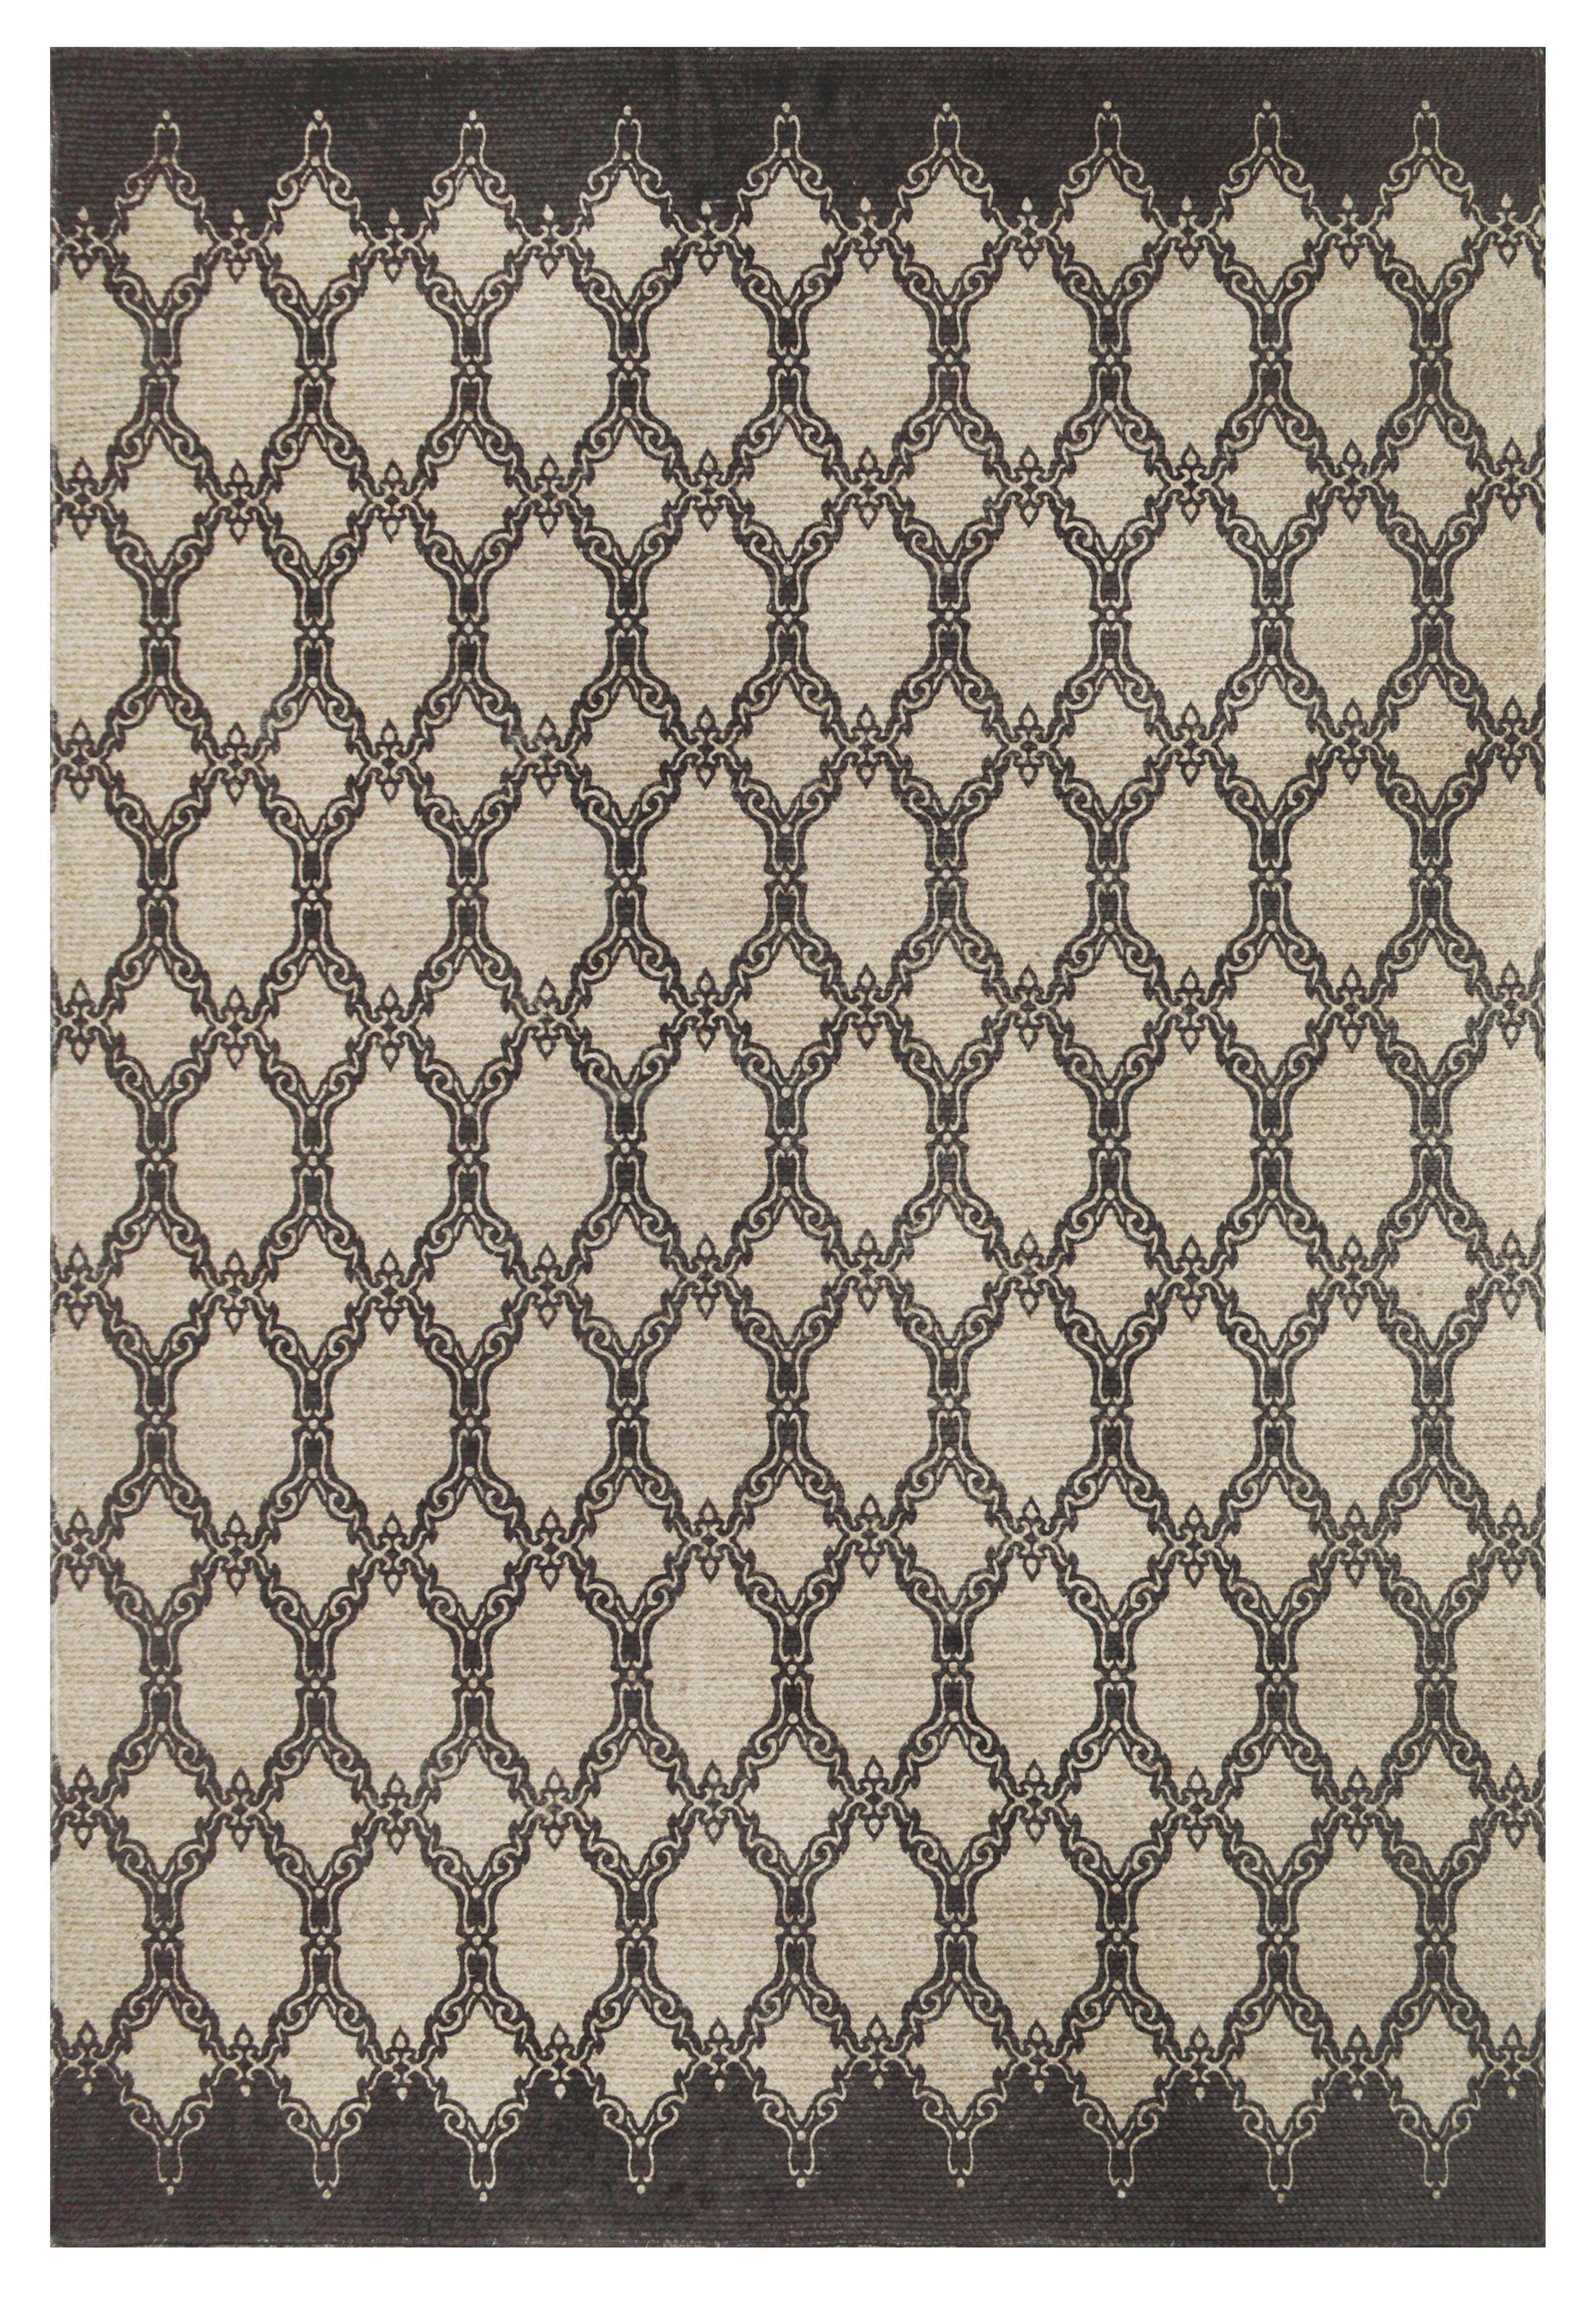 Eastlawn Hand Braided Charcoal Area Rug Rug Size: Rectangle 8' x 10'